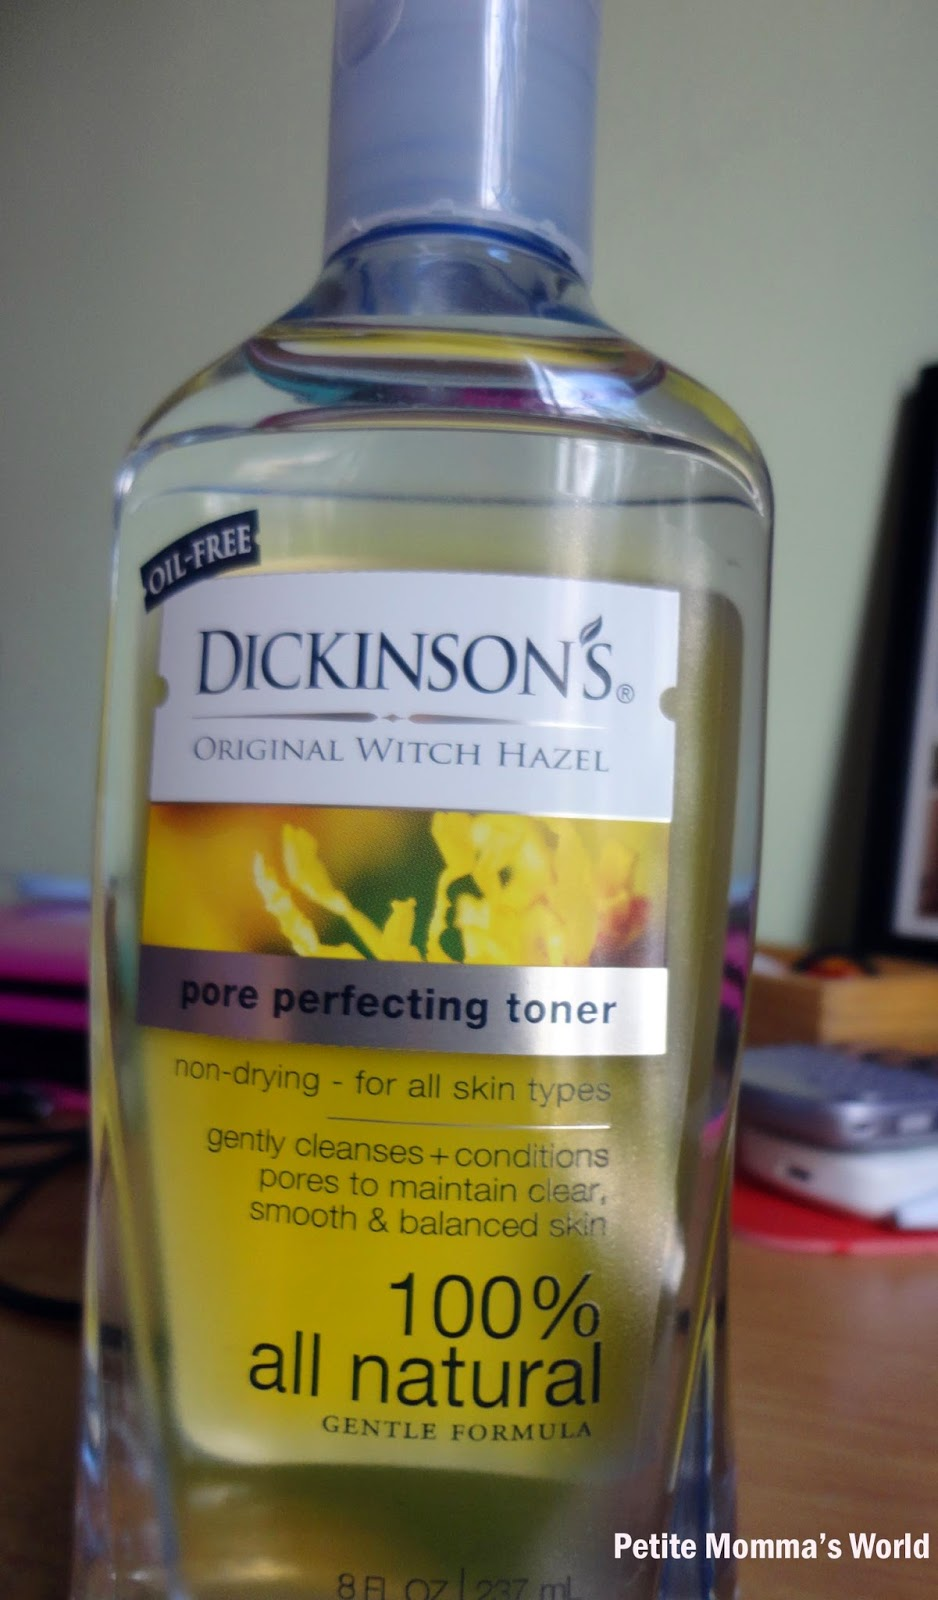 Dickinson's Original Witch Hazel Toner